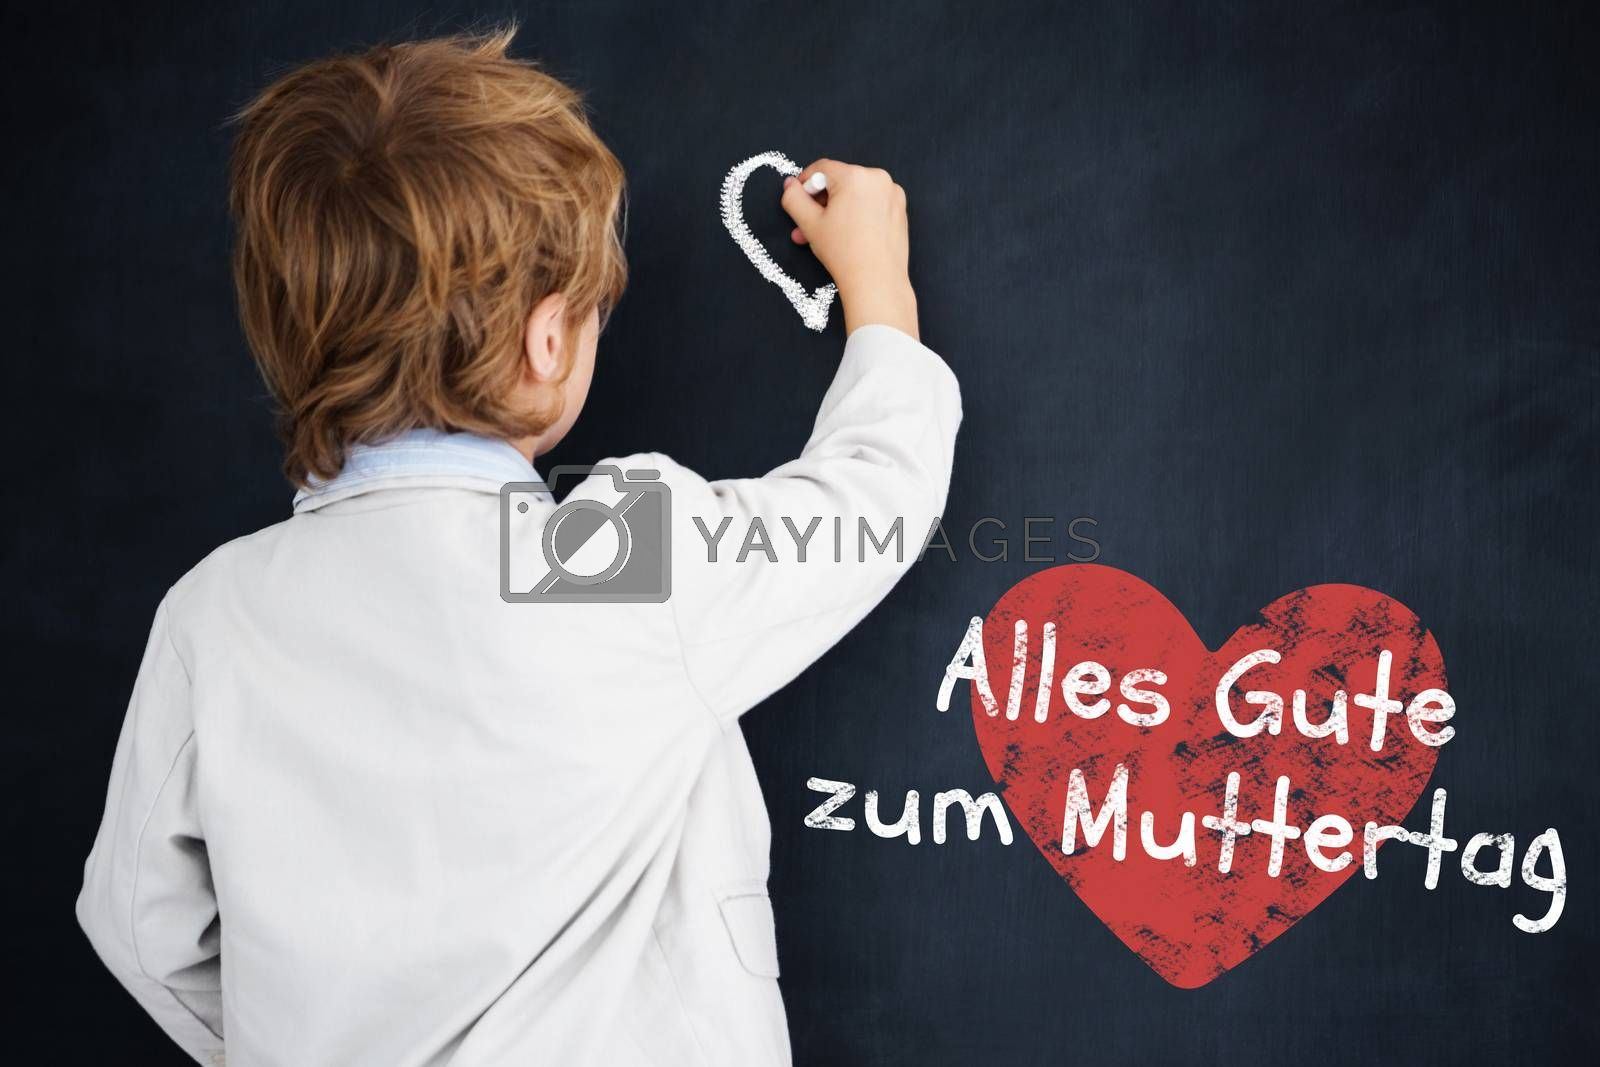 Cute pupil writing on board against black